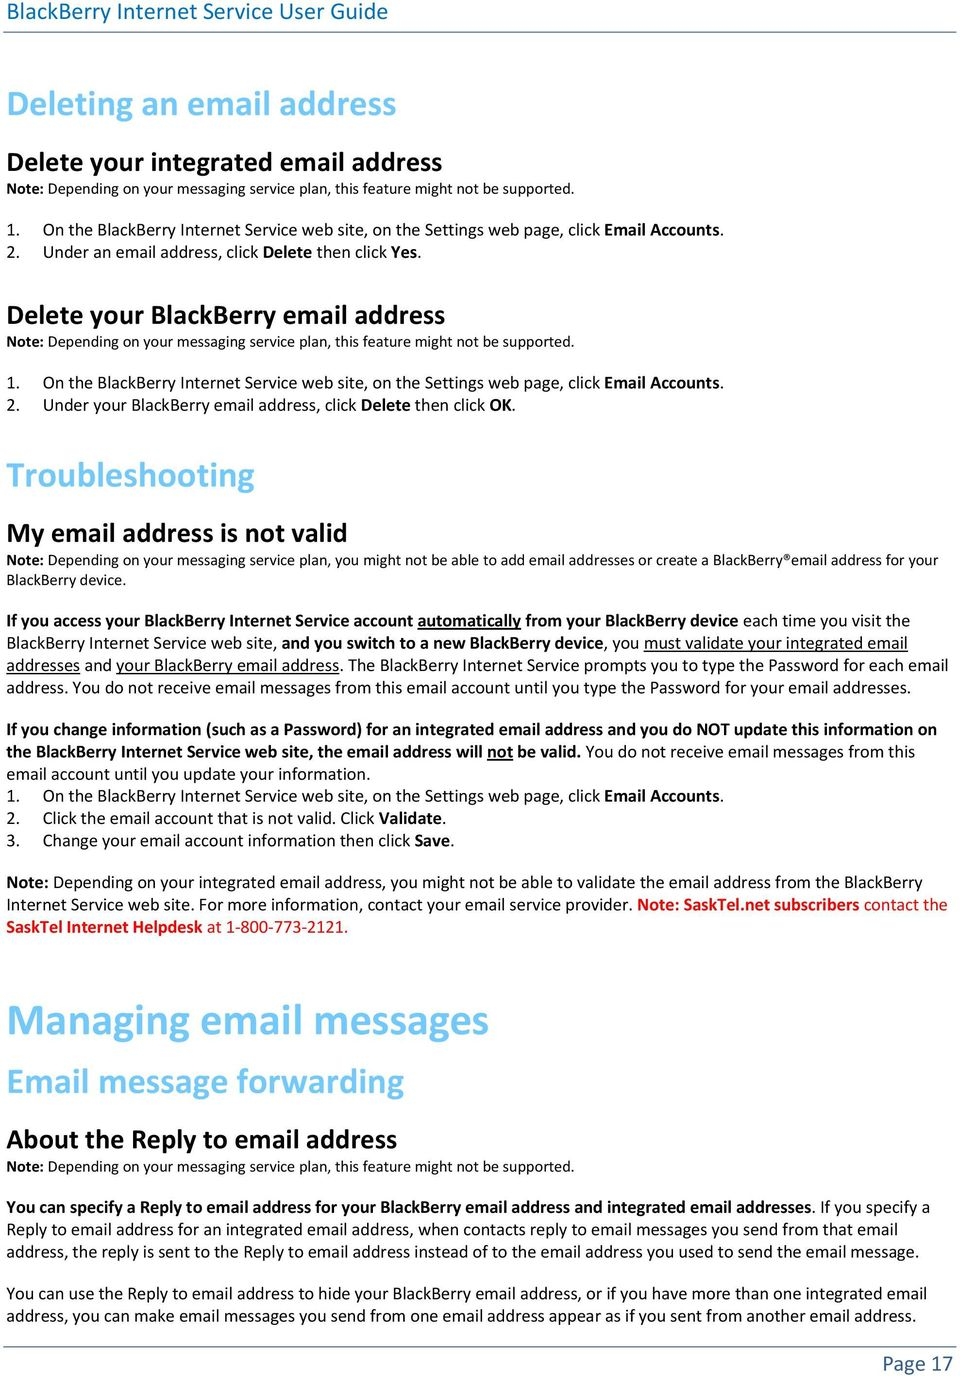 Troubleshooting My email address is not valid Note: Depending on your messaging service plan, you might not be able to add email addresses or create a BlackBerry email address for your BlackBerry